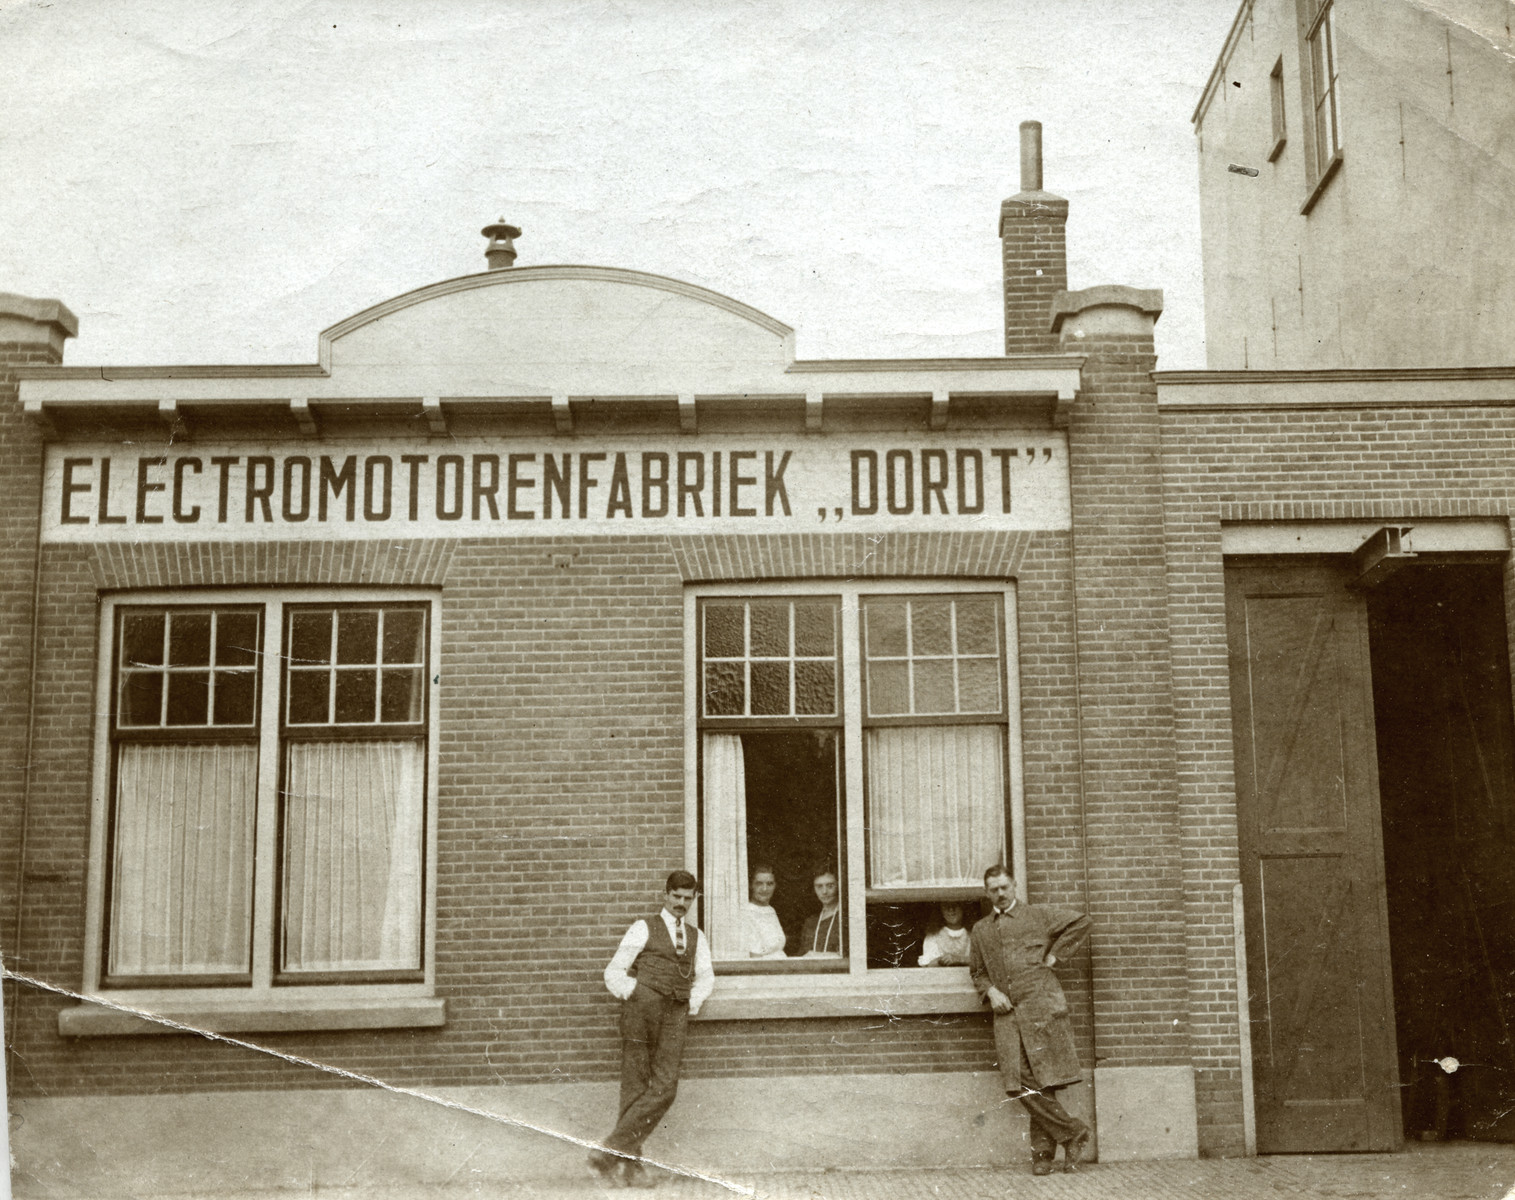 Adrian Lujten (right) and and his brother-in-law Roel Rosendaal (left) stand in front of their factory, the Electromotorenfabriek.